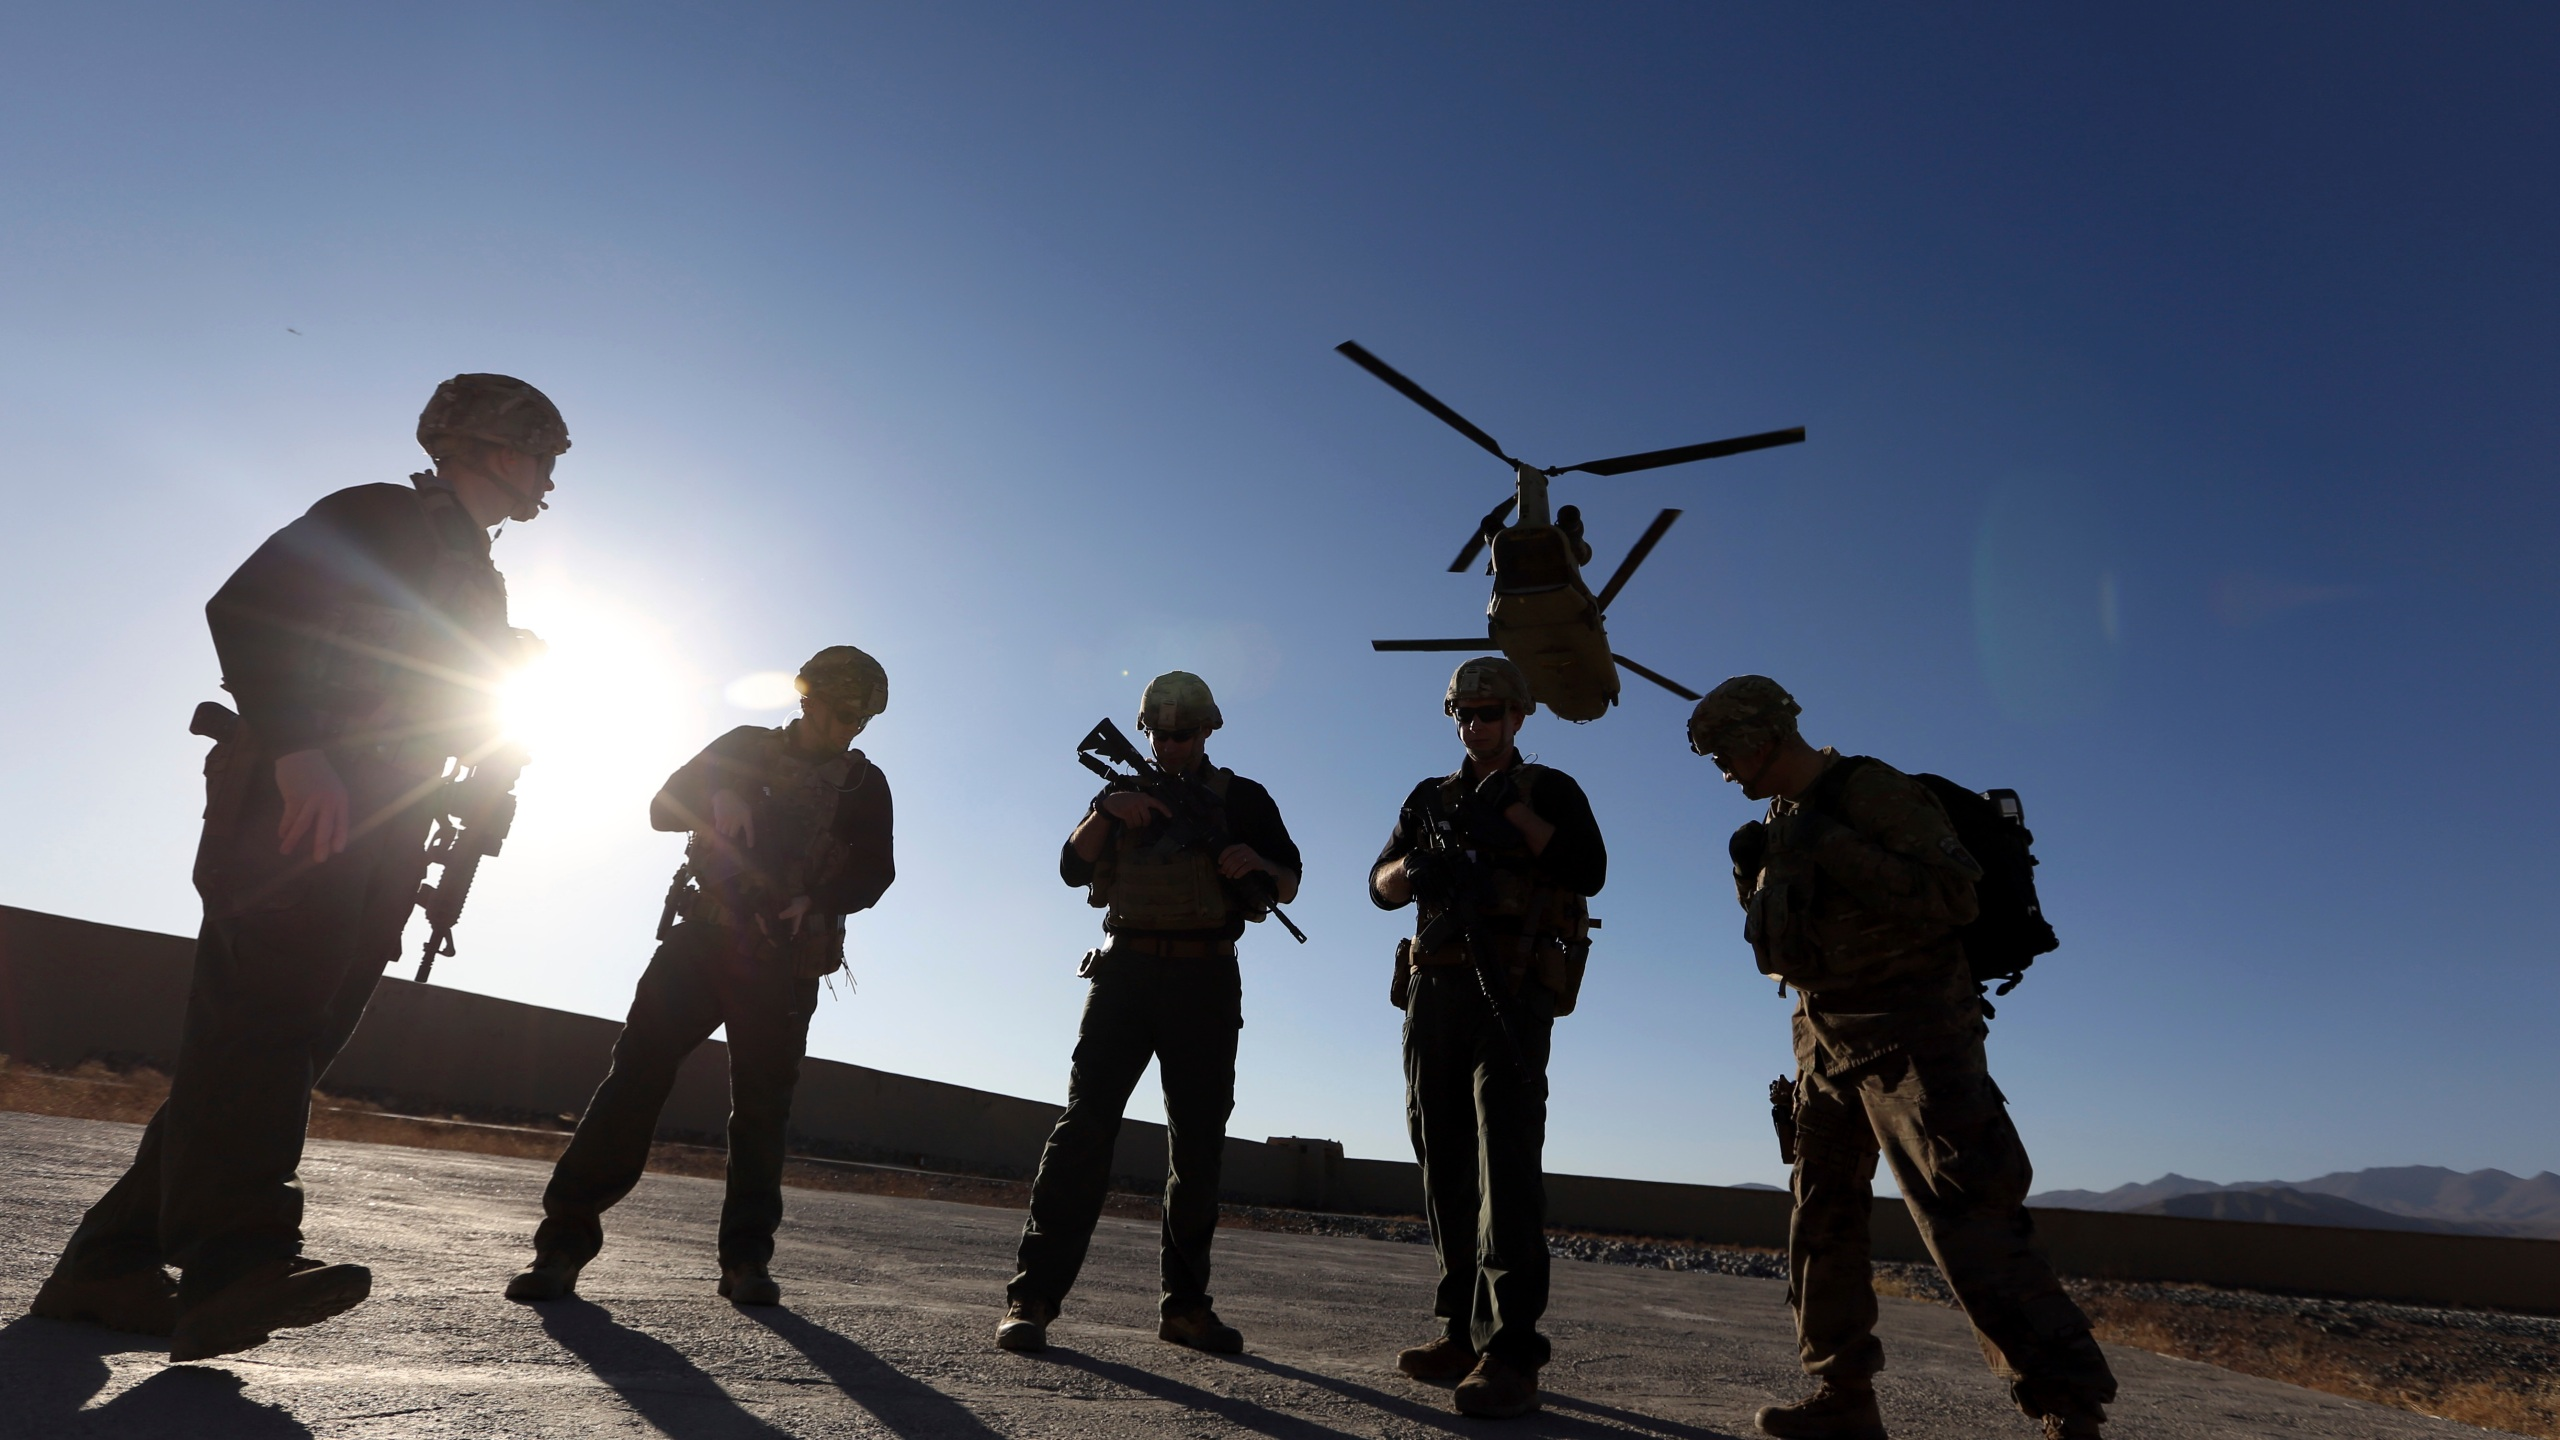 American soldiers wait on the tarmac in Logar province, Afghanistan in this Nov. 30, 2017 file photo. The U.S. is pausing movement of troops into Afghanistan and quarantining 1,500 new arrivals to country due to virus. (AP Photo/Rahmat Gul, File)